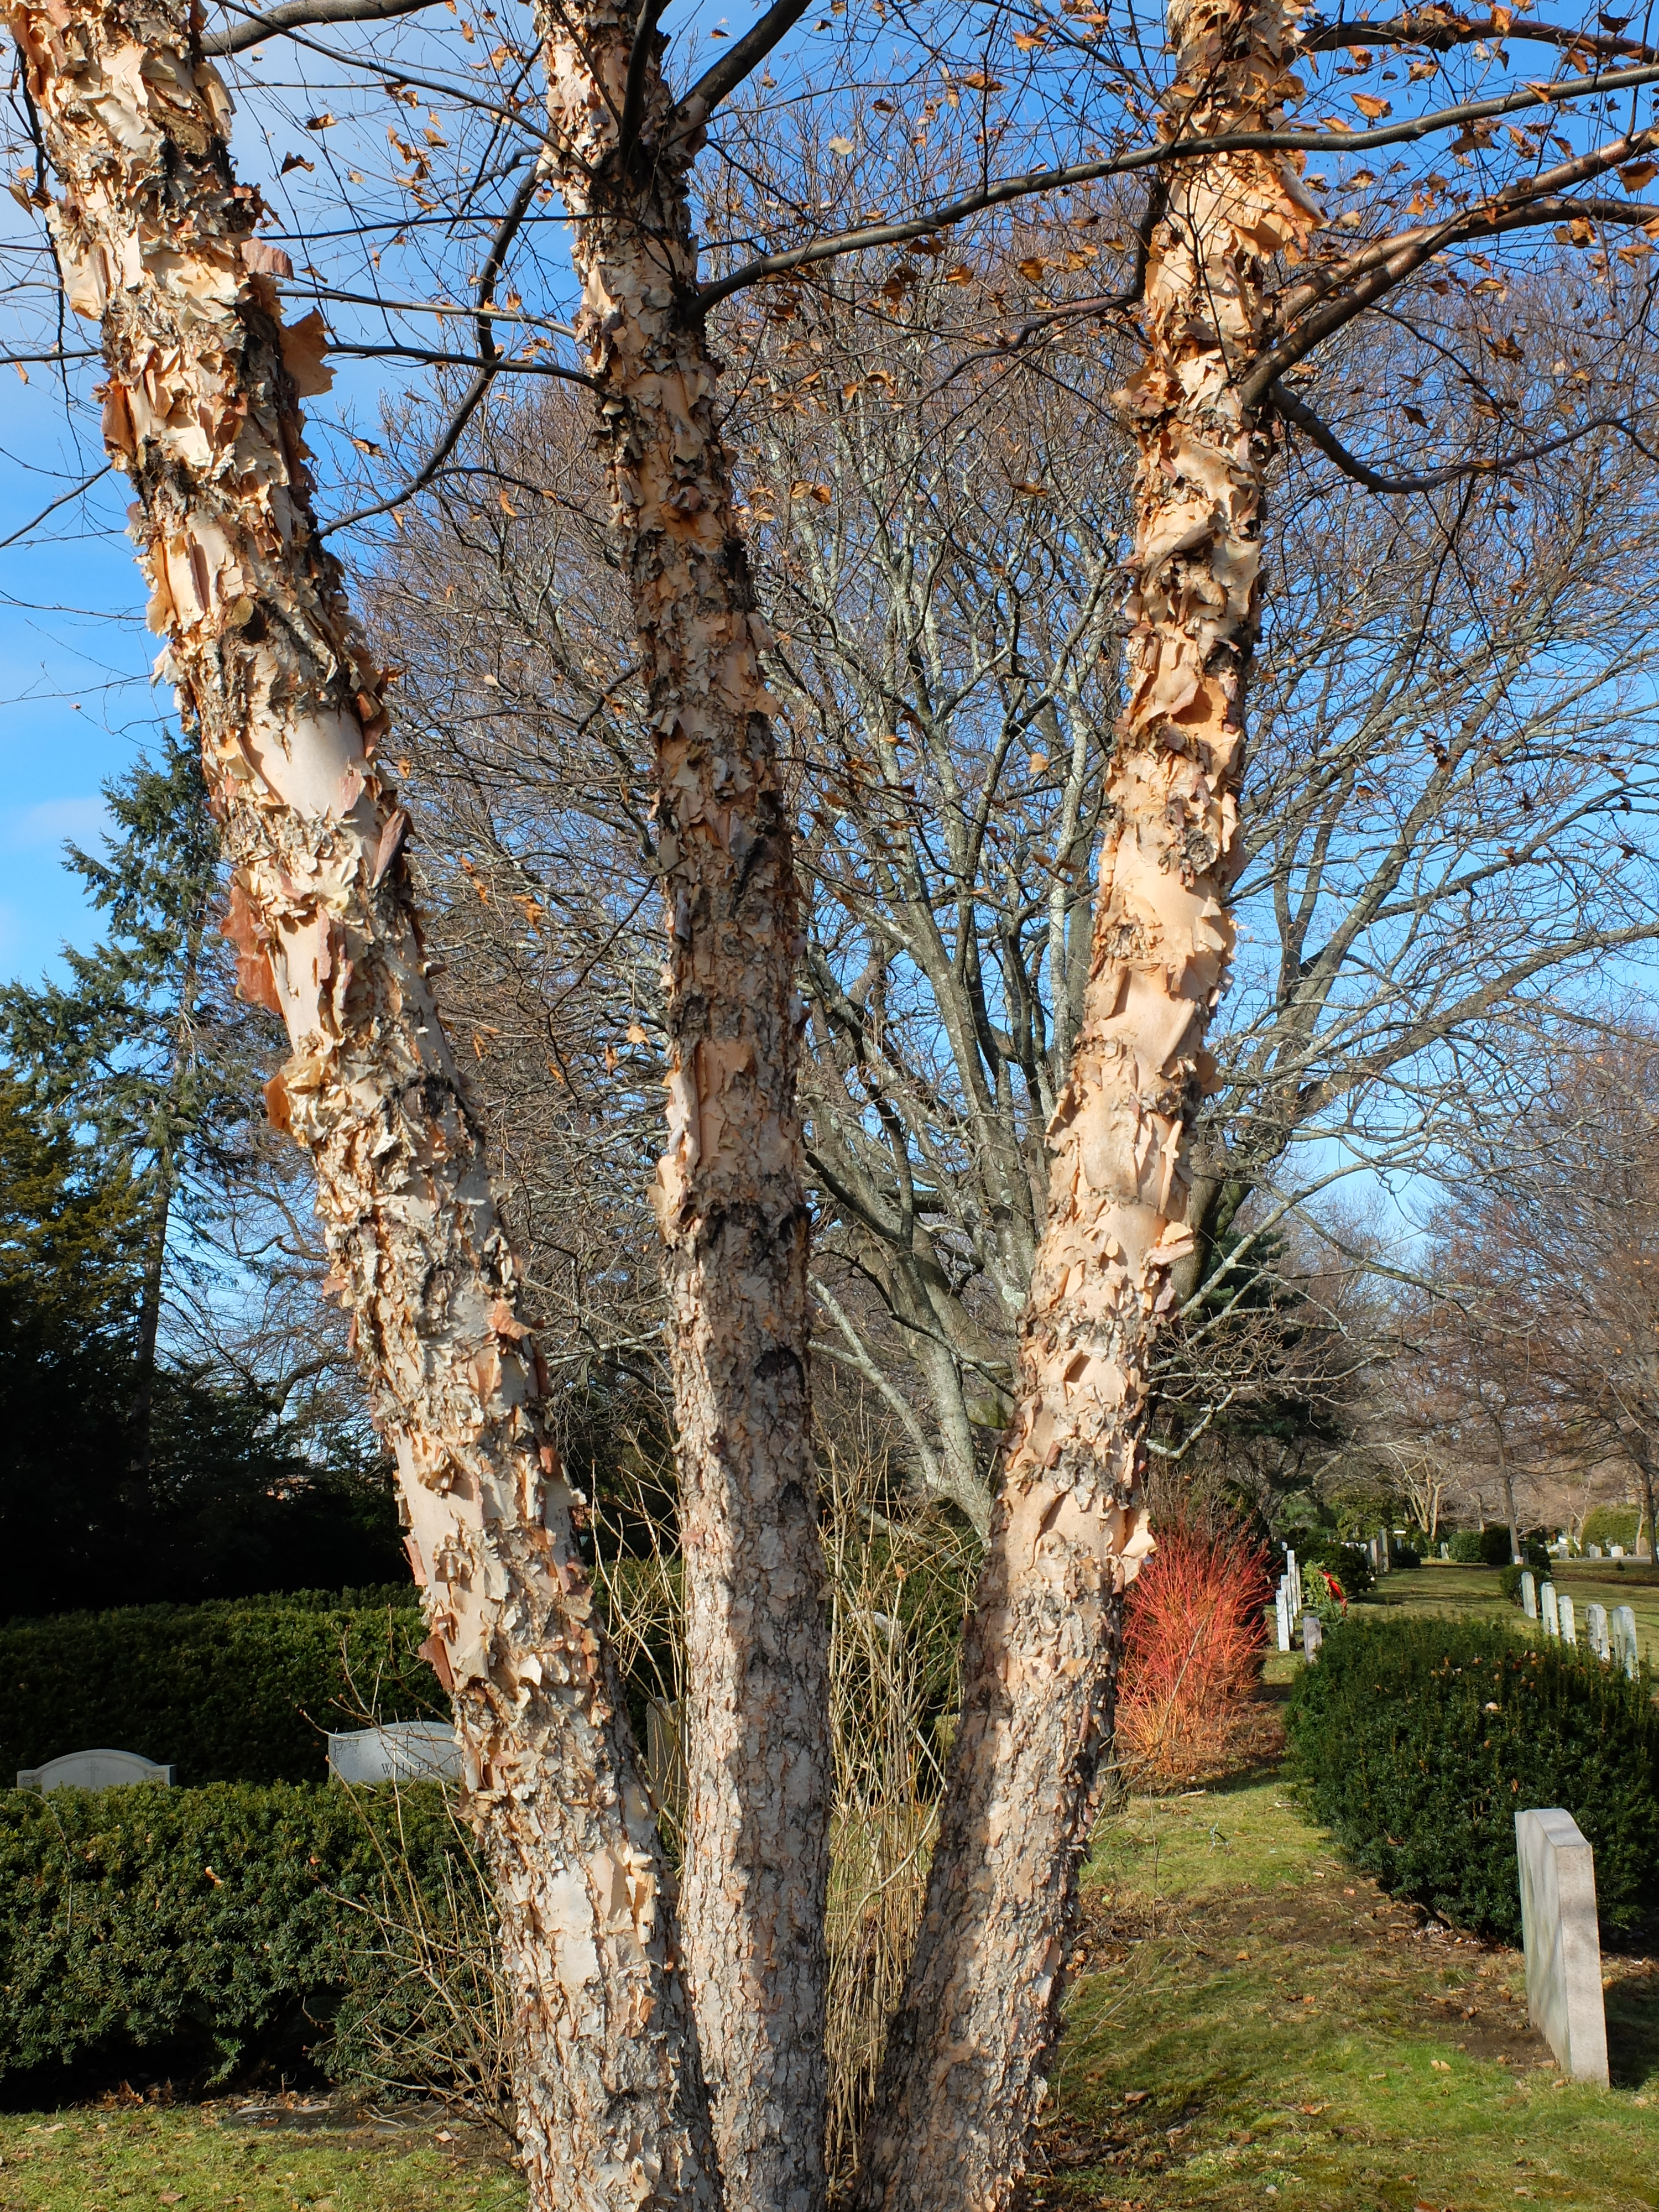 Pennsylvania Horticultural Society >> Horticulture Highlight: Cully Heritage River Birch, Betula nigra 'Cully' | Mount Auburn Cemetery